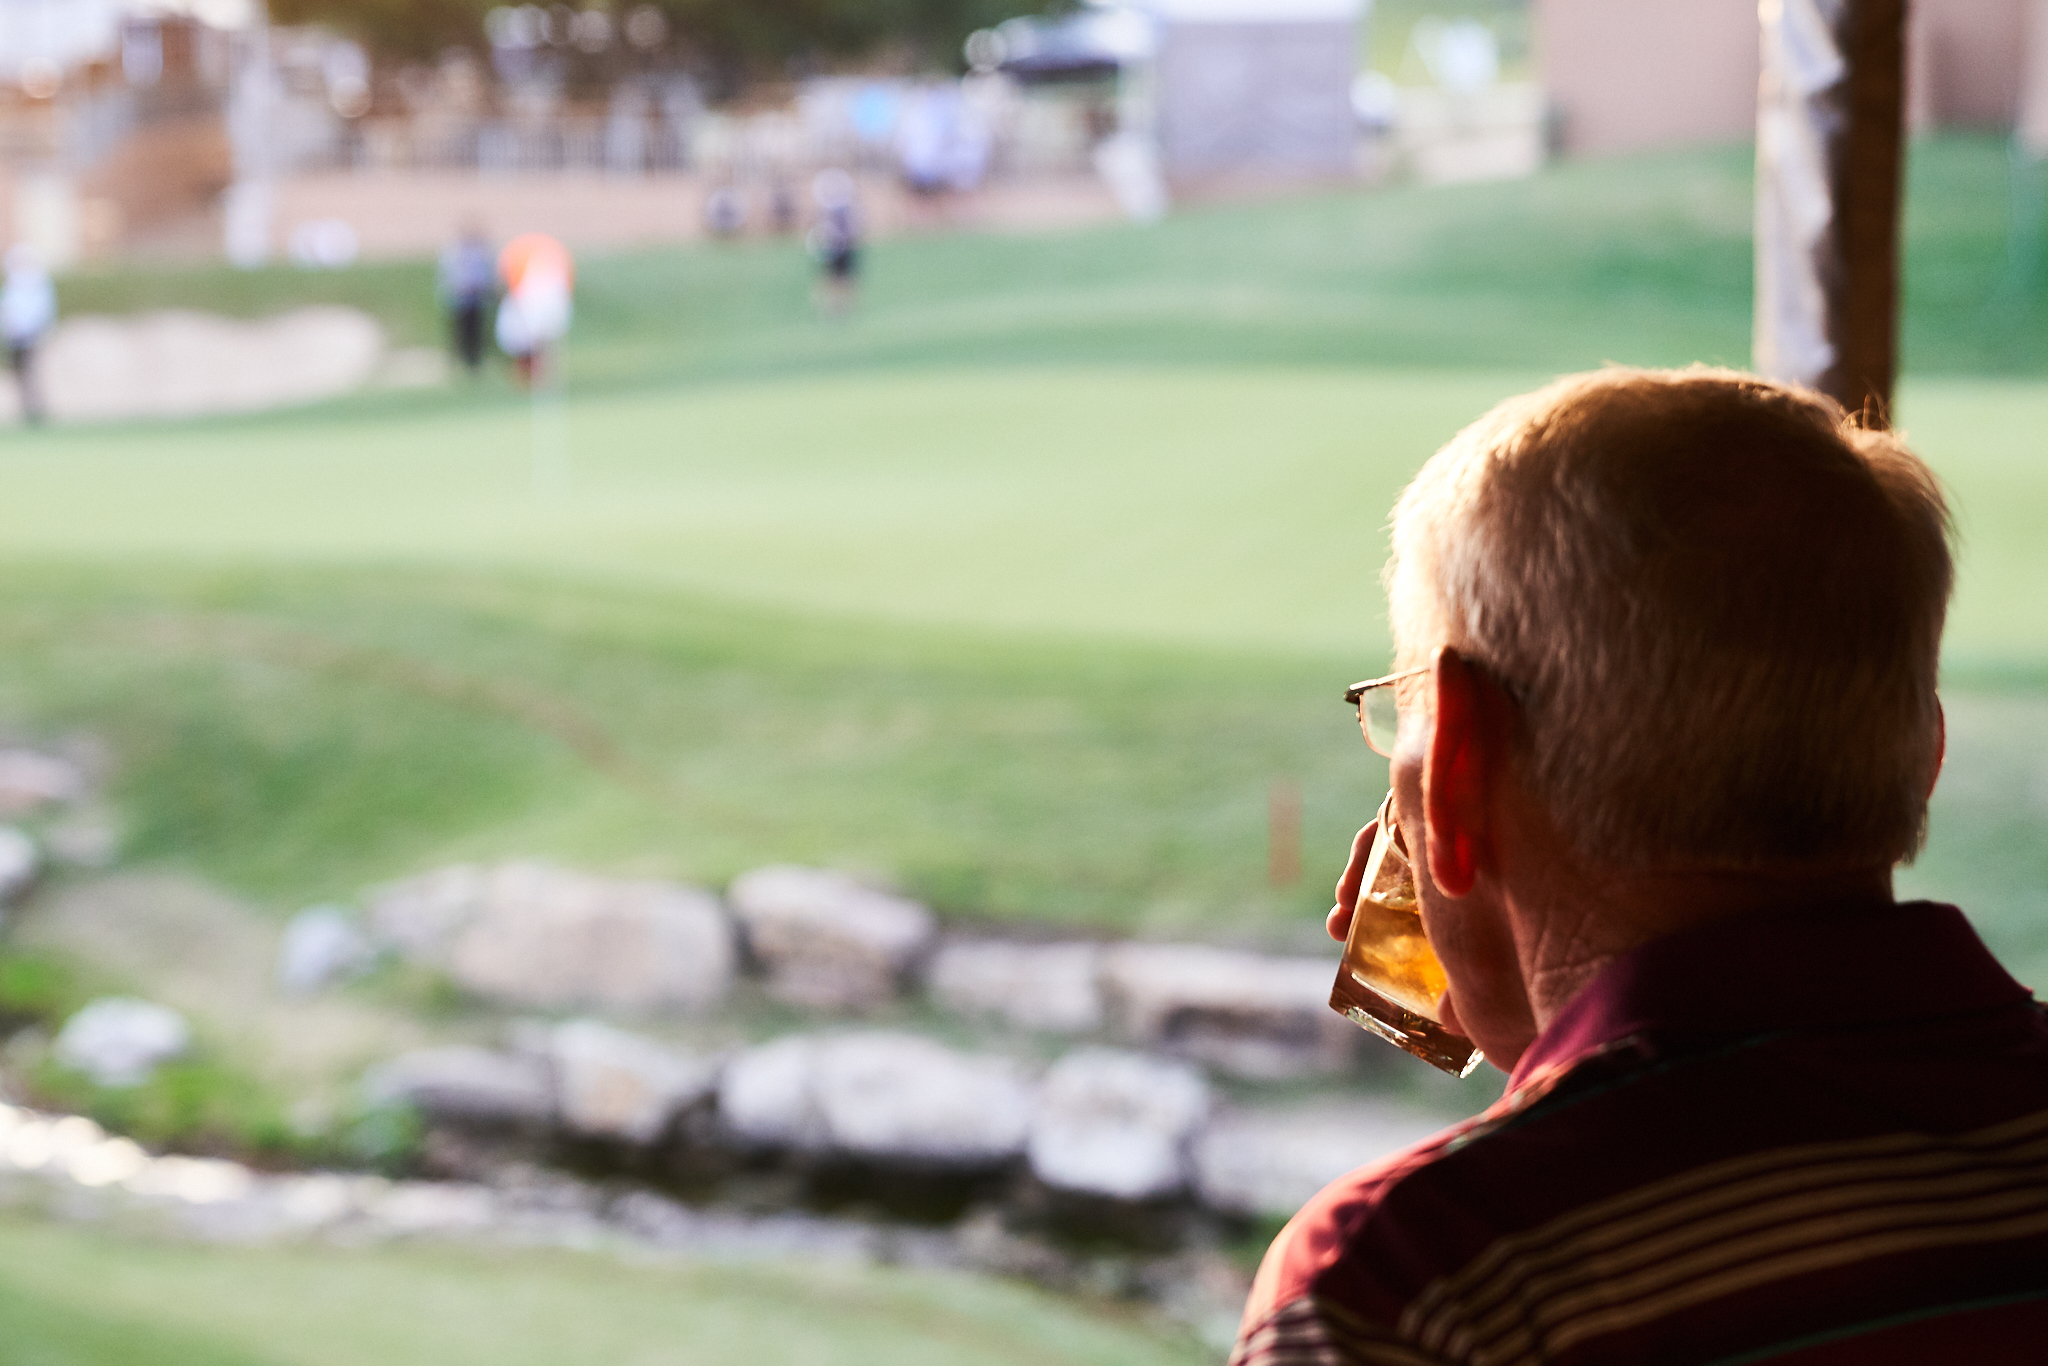 Sipping a whiskey at an 18th green skybox  Sony A7rIII, Sony 24-70mm f2.8 GM